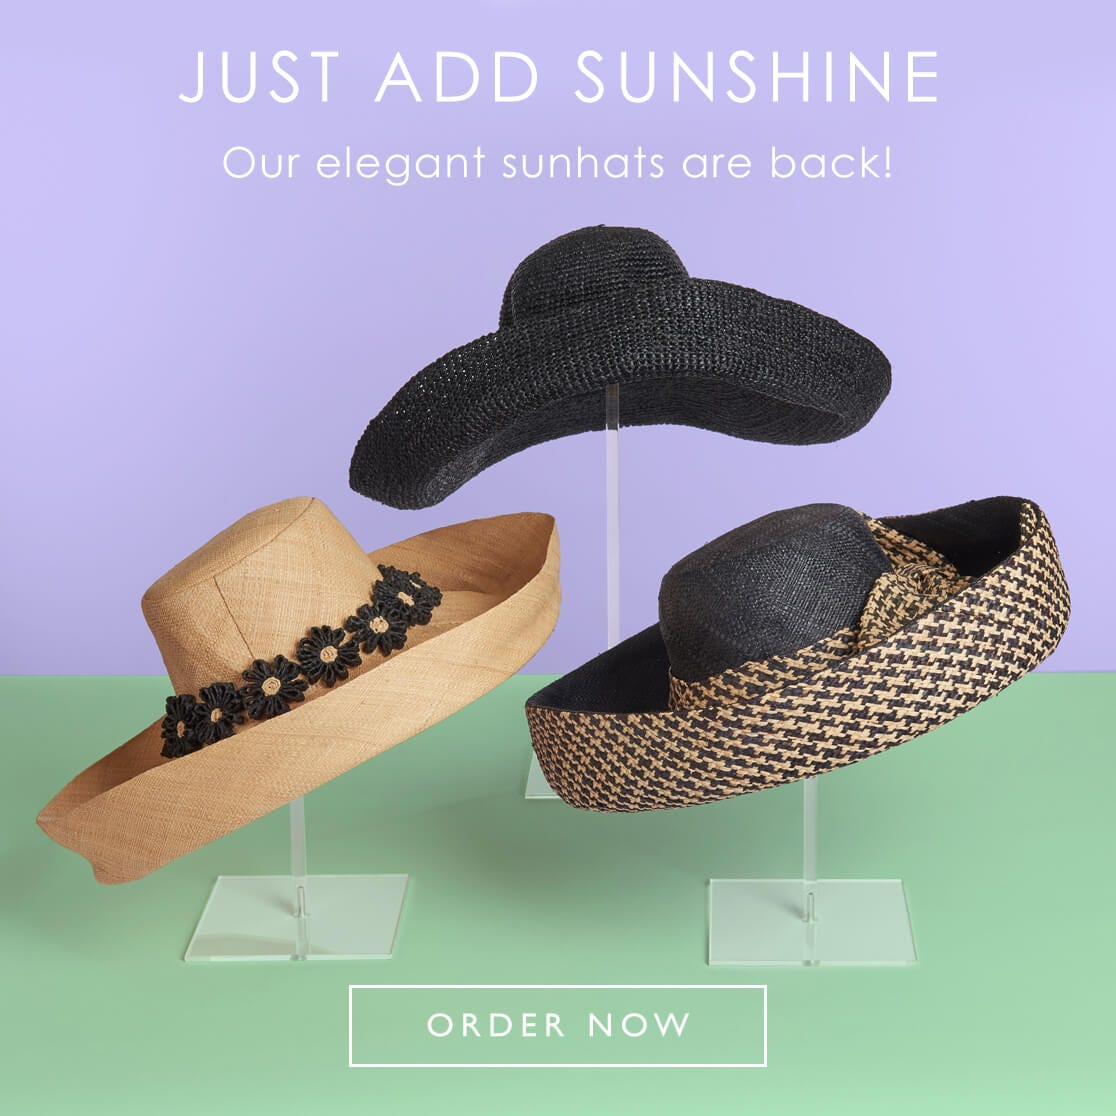 Our elegant sunhats are back!